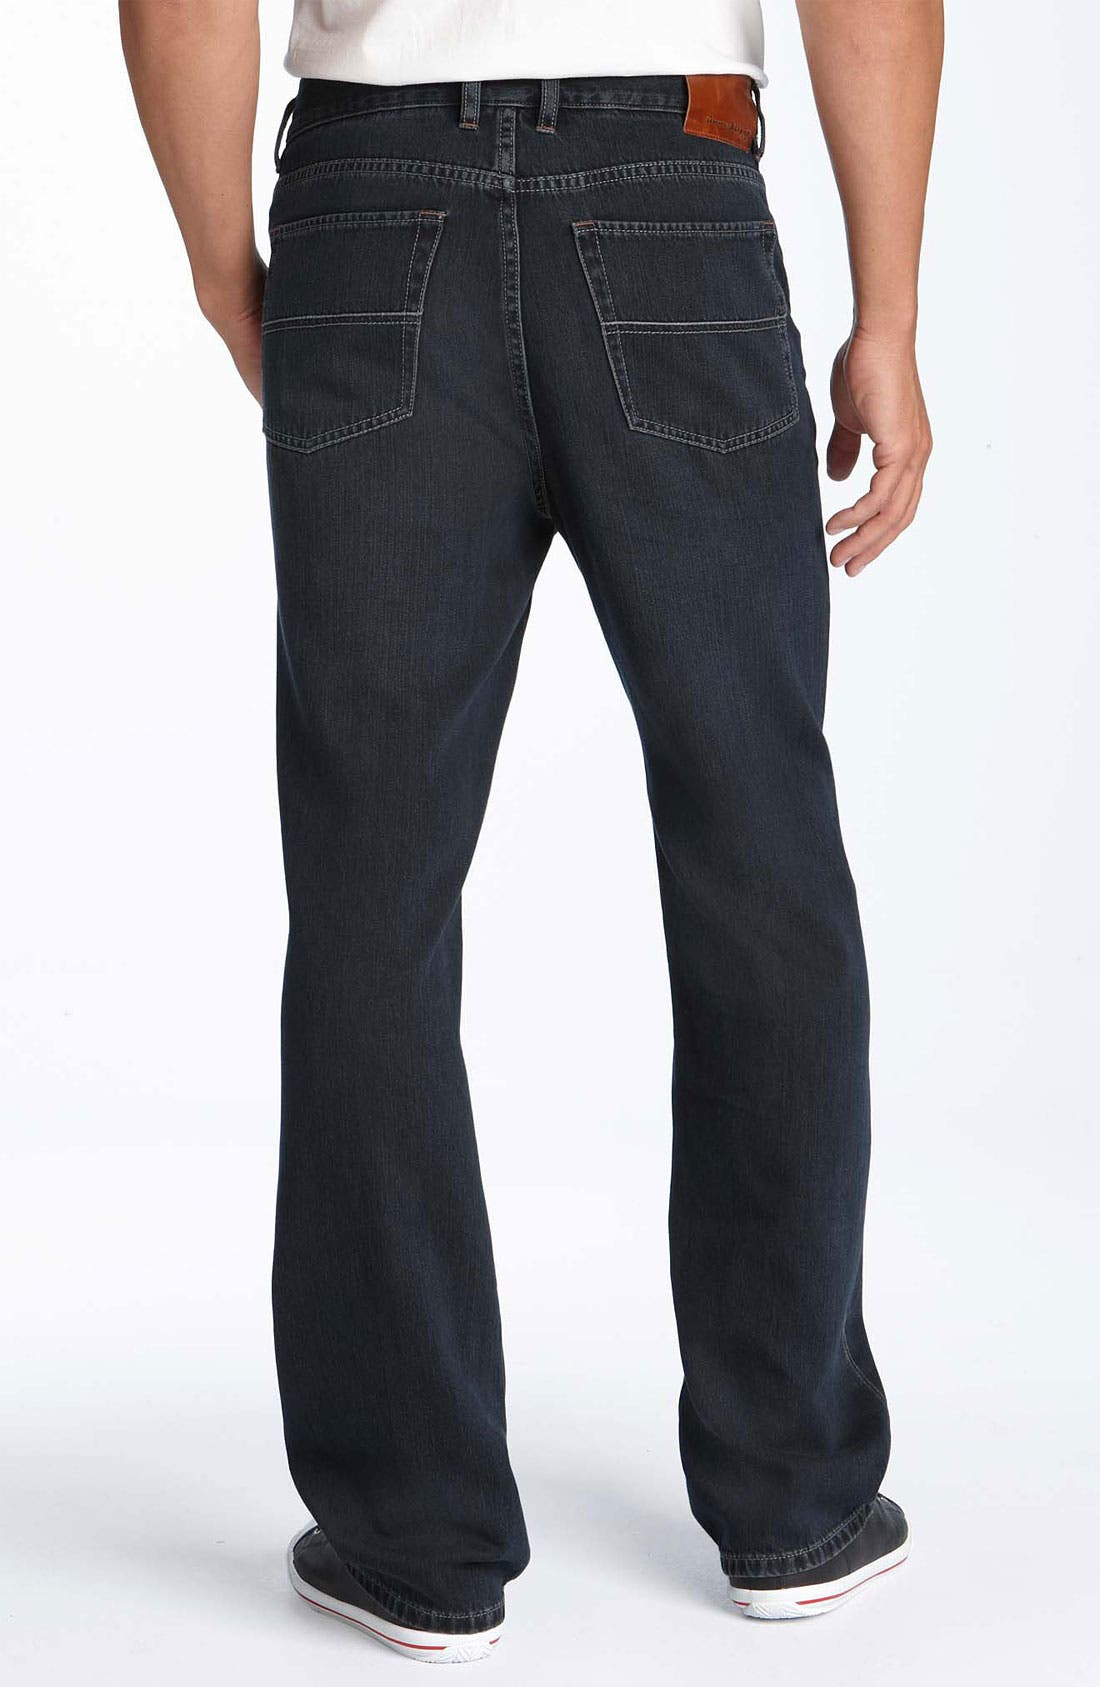 Alternate Image 2  - Tommy Bahama Denim 'Island Ease' Straight Leg Jeans (Black Overdye)